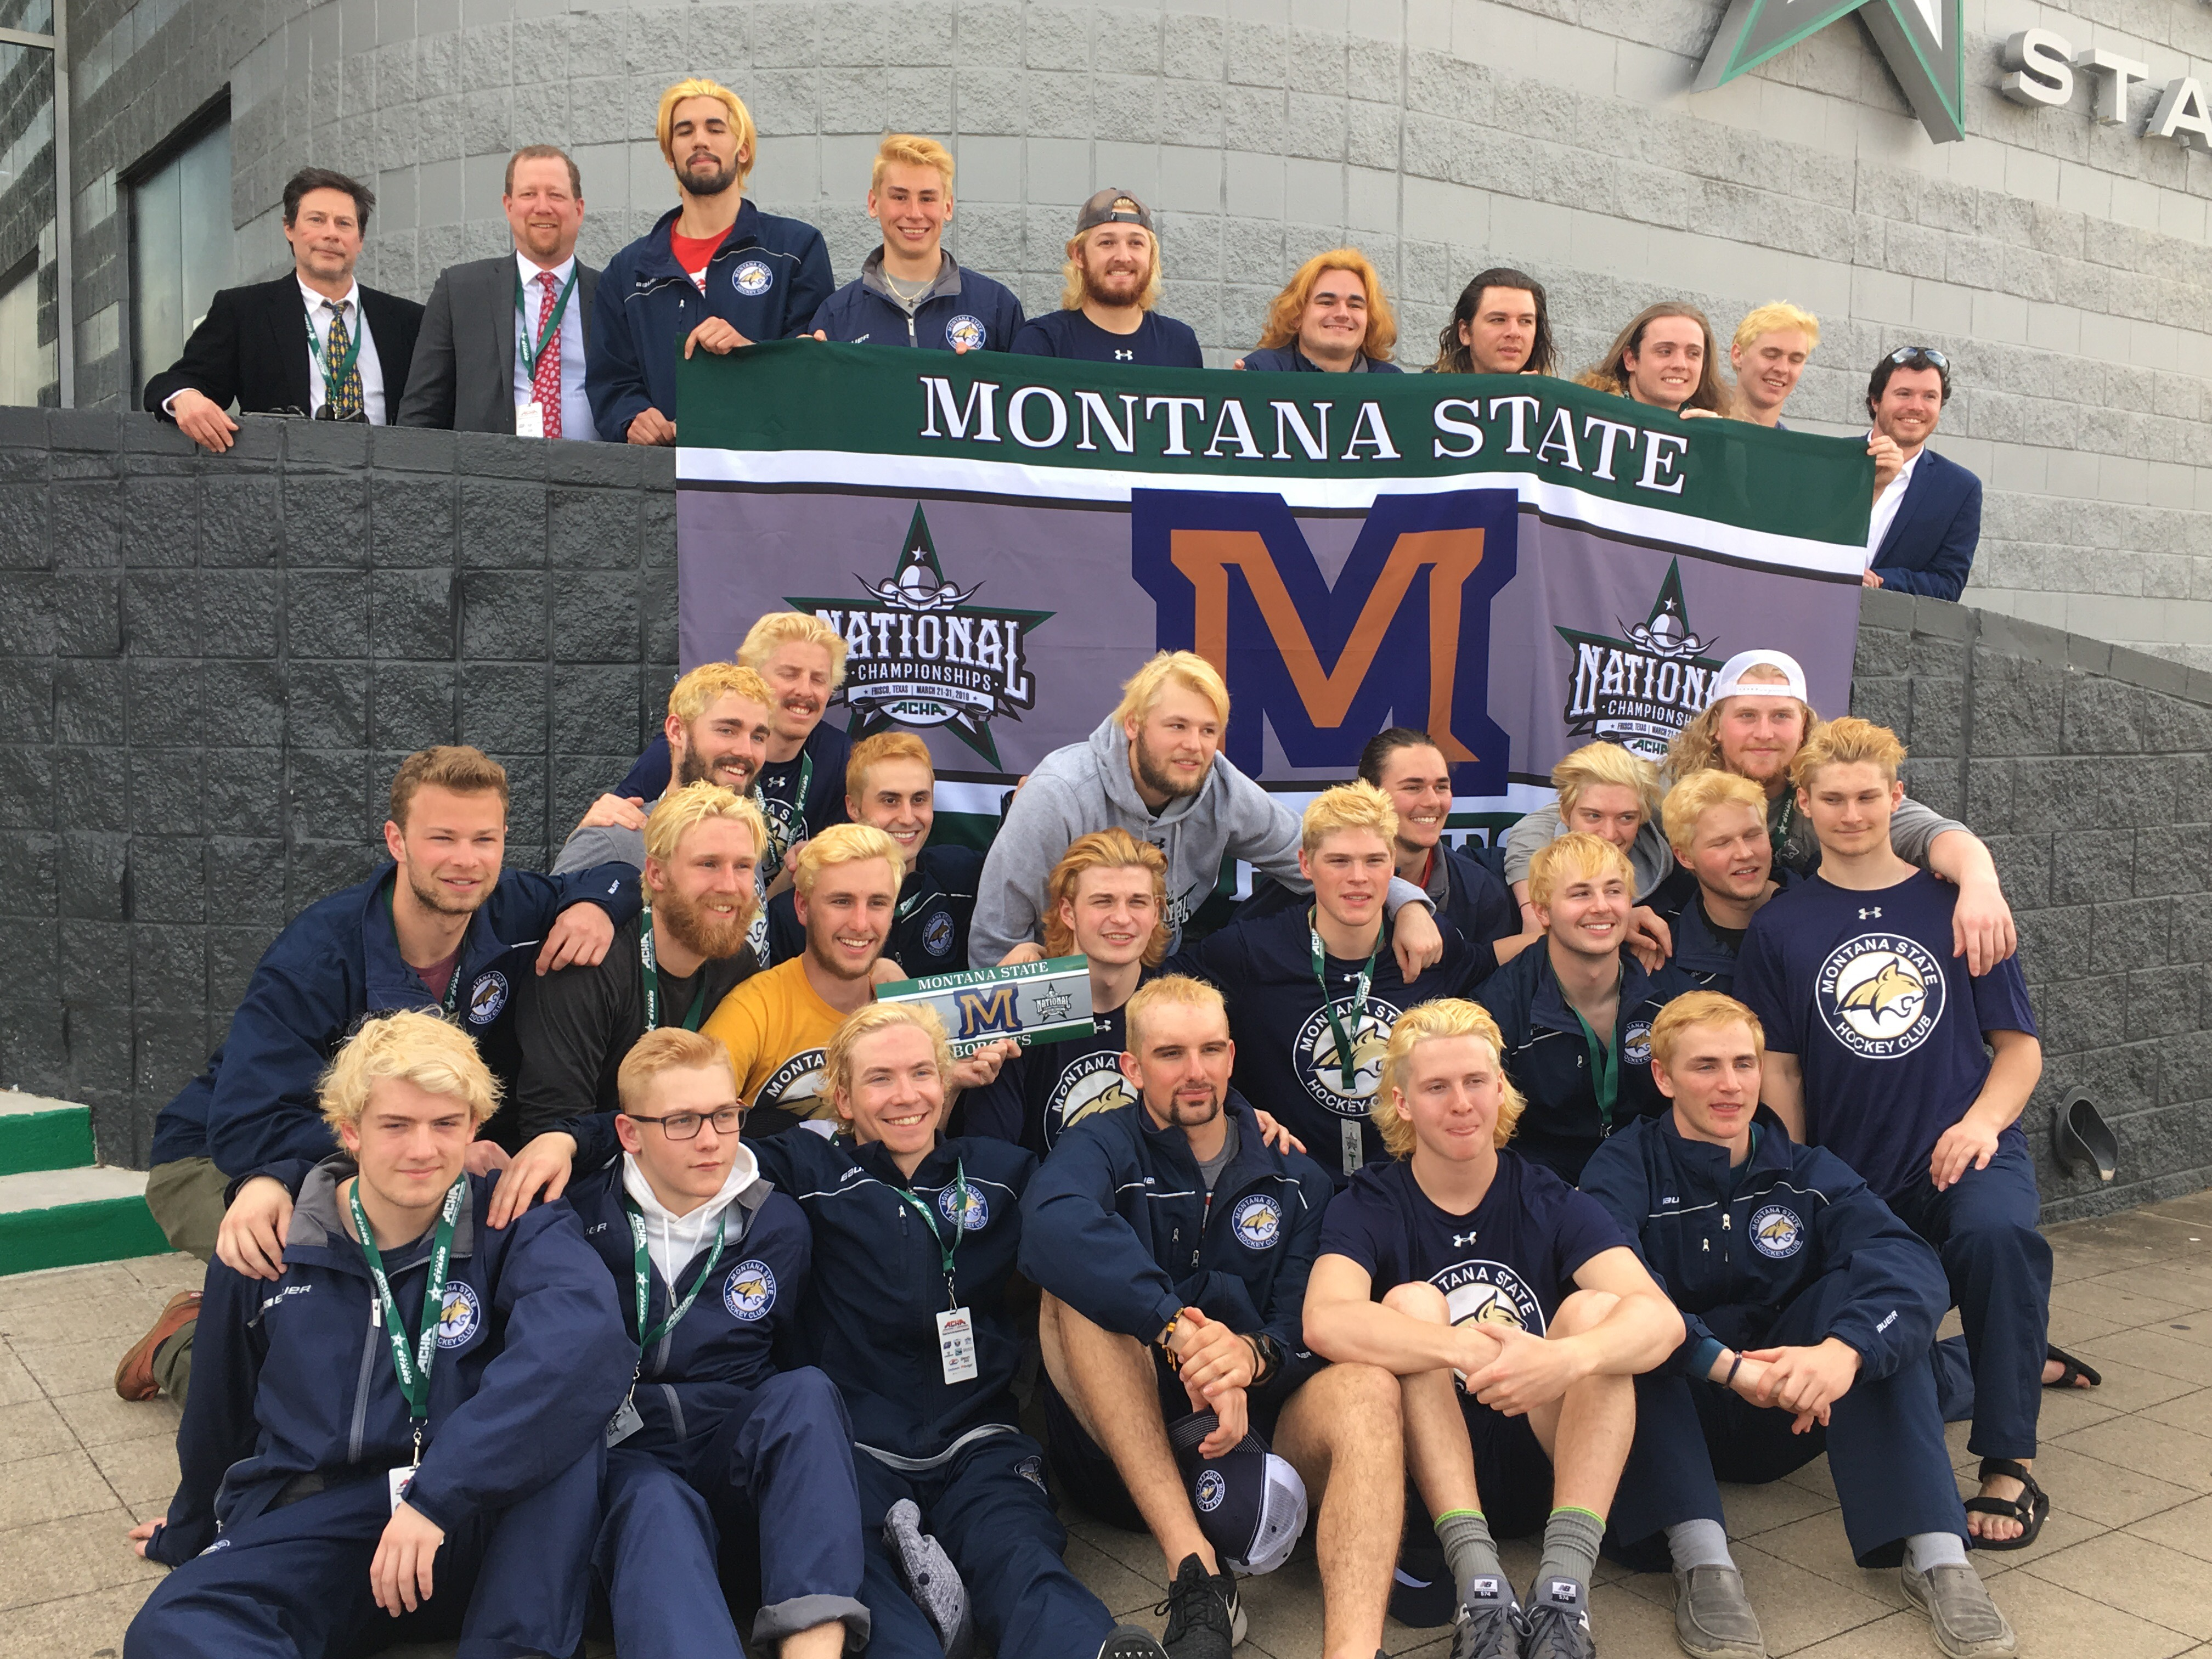 Men's Hockey Club team picture at Nationals